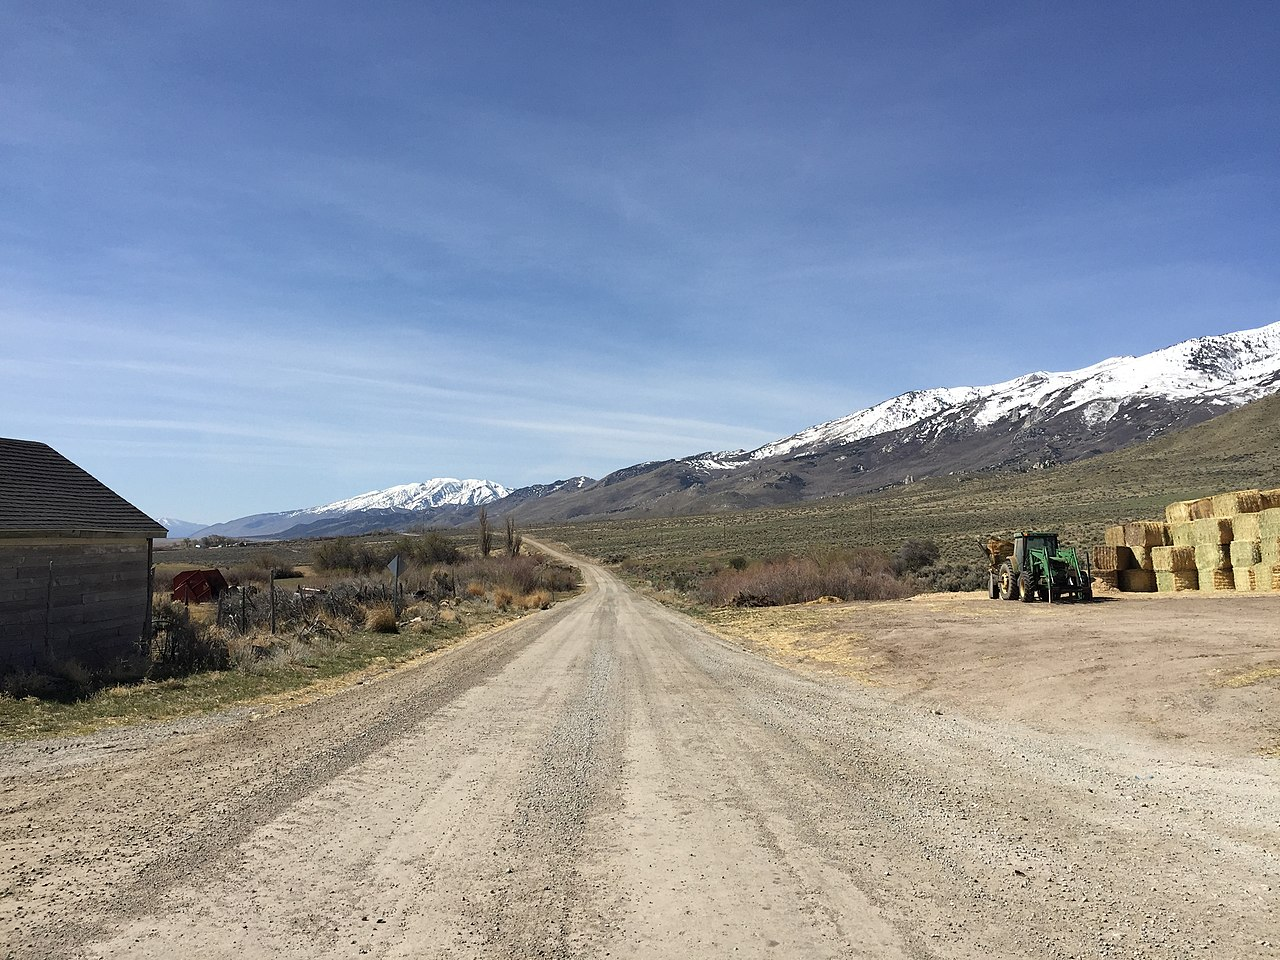 File:2015-04-04 10 32 25 View south along Ruby Valley Road ...